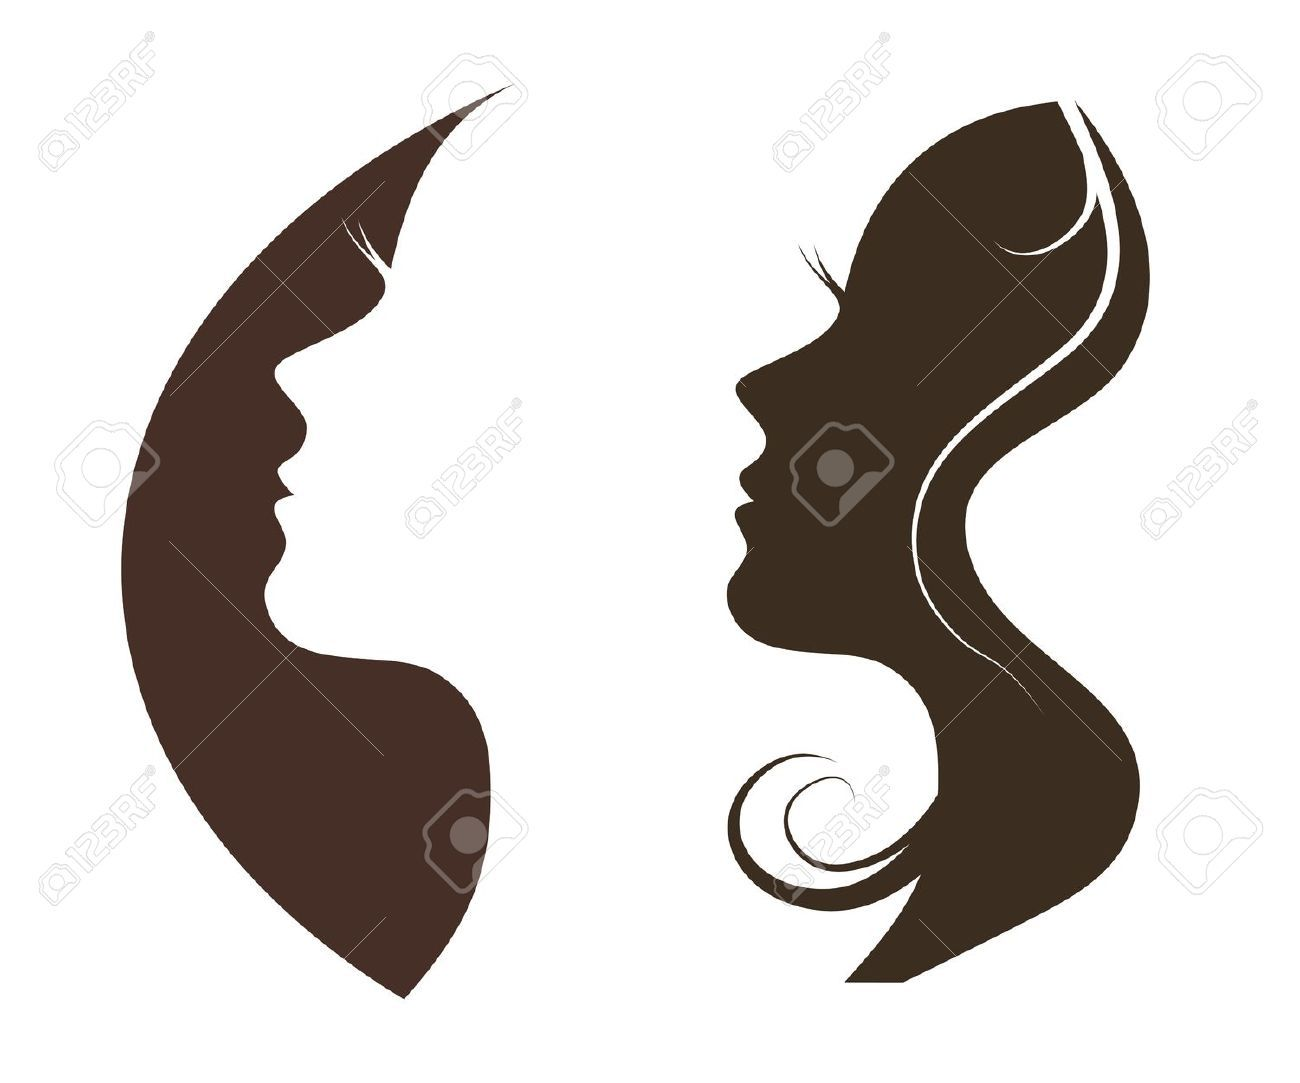 Woman Chat Vector Logo Design Template. Girl Silhouette - Cosmetics,.. Royalty Free Cliparts, Vectors, And Stock Illustration. Image 31414881.